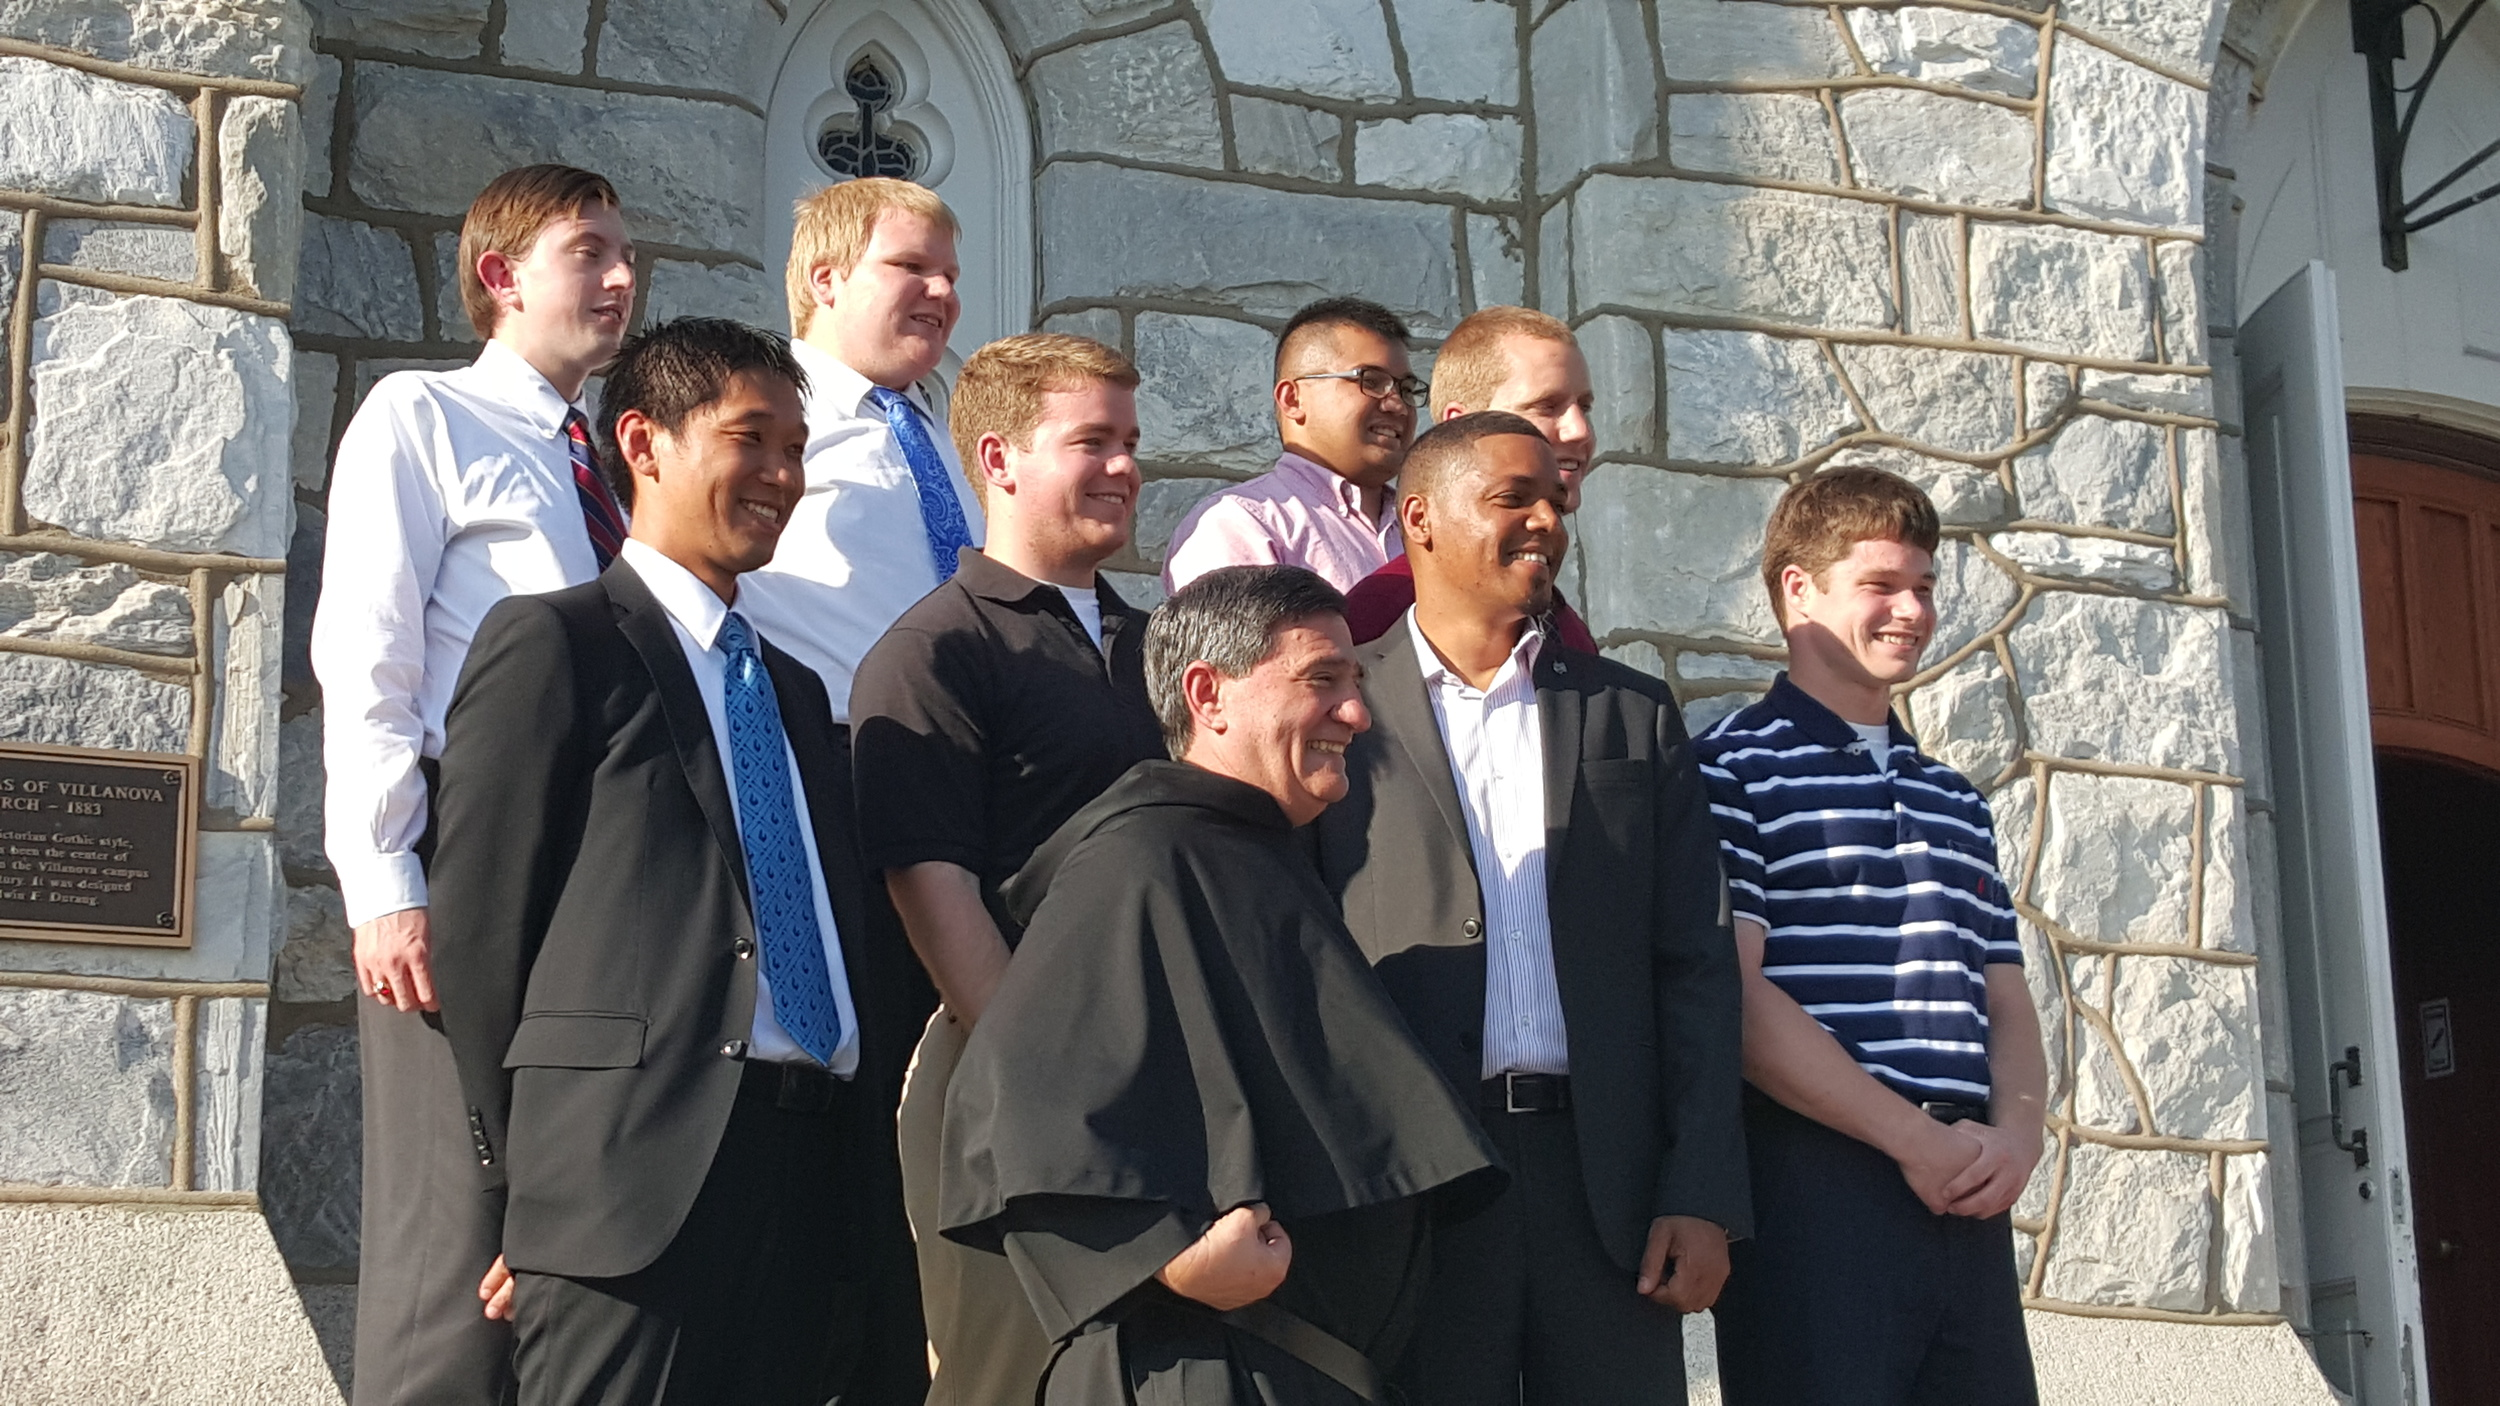 VILLANOVA, PA - These are eight of the 12 men that will become the new 2015-2016 class of Novices